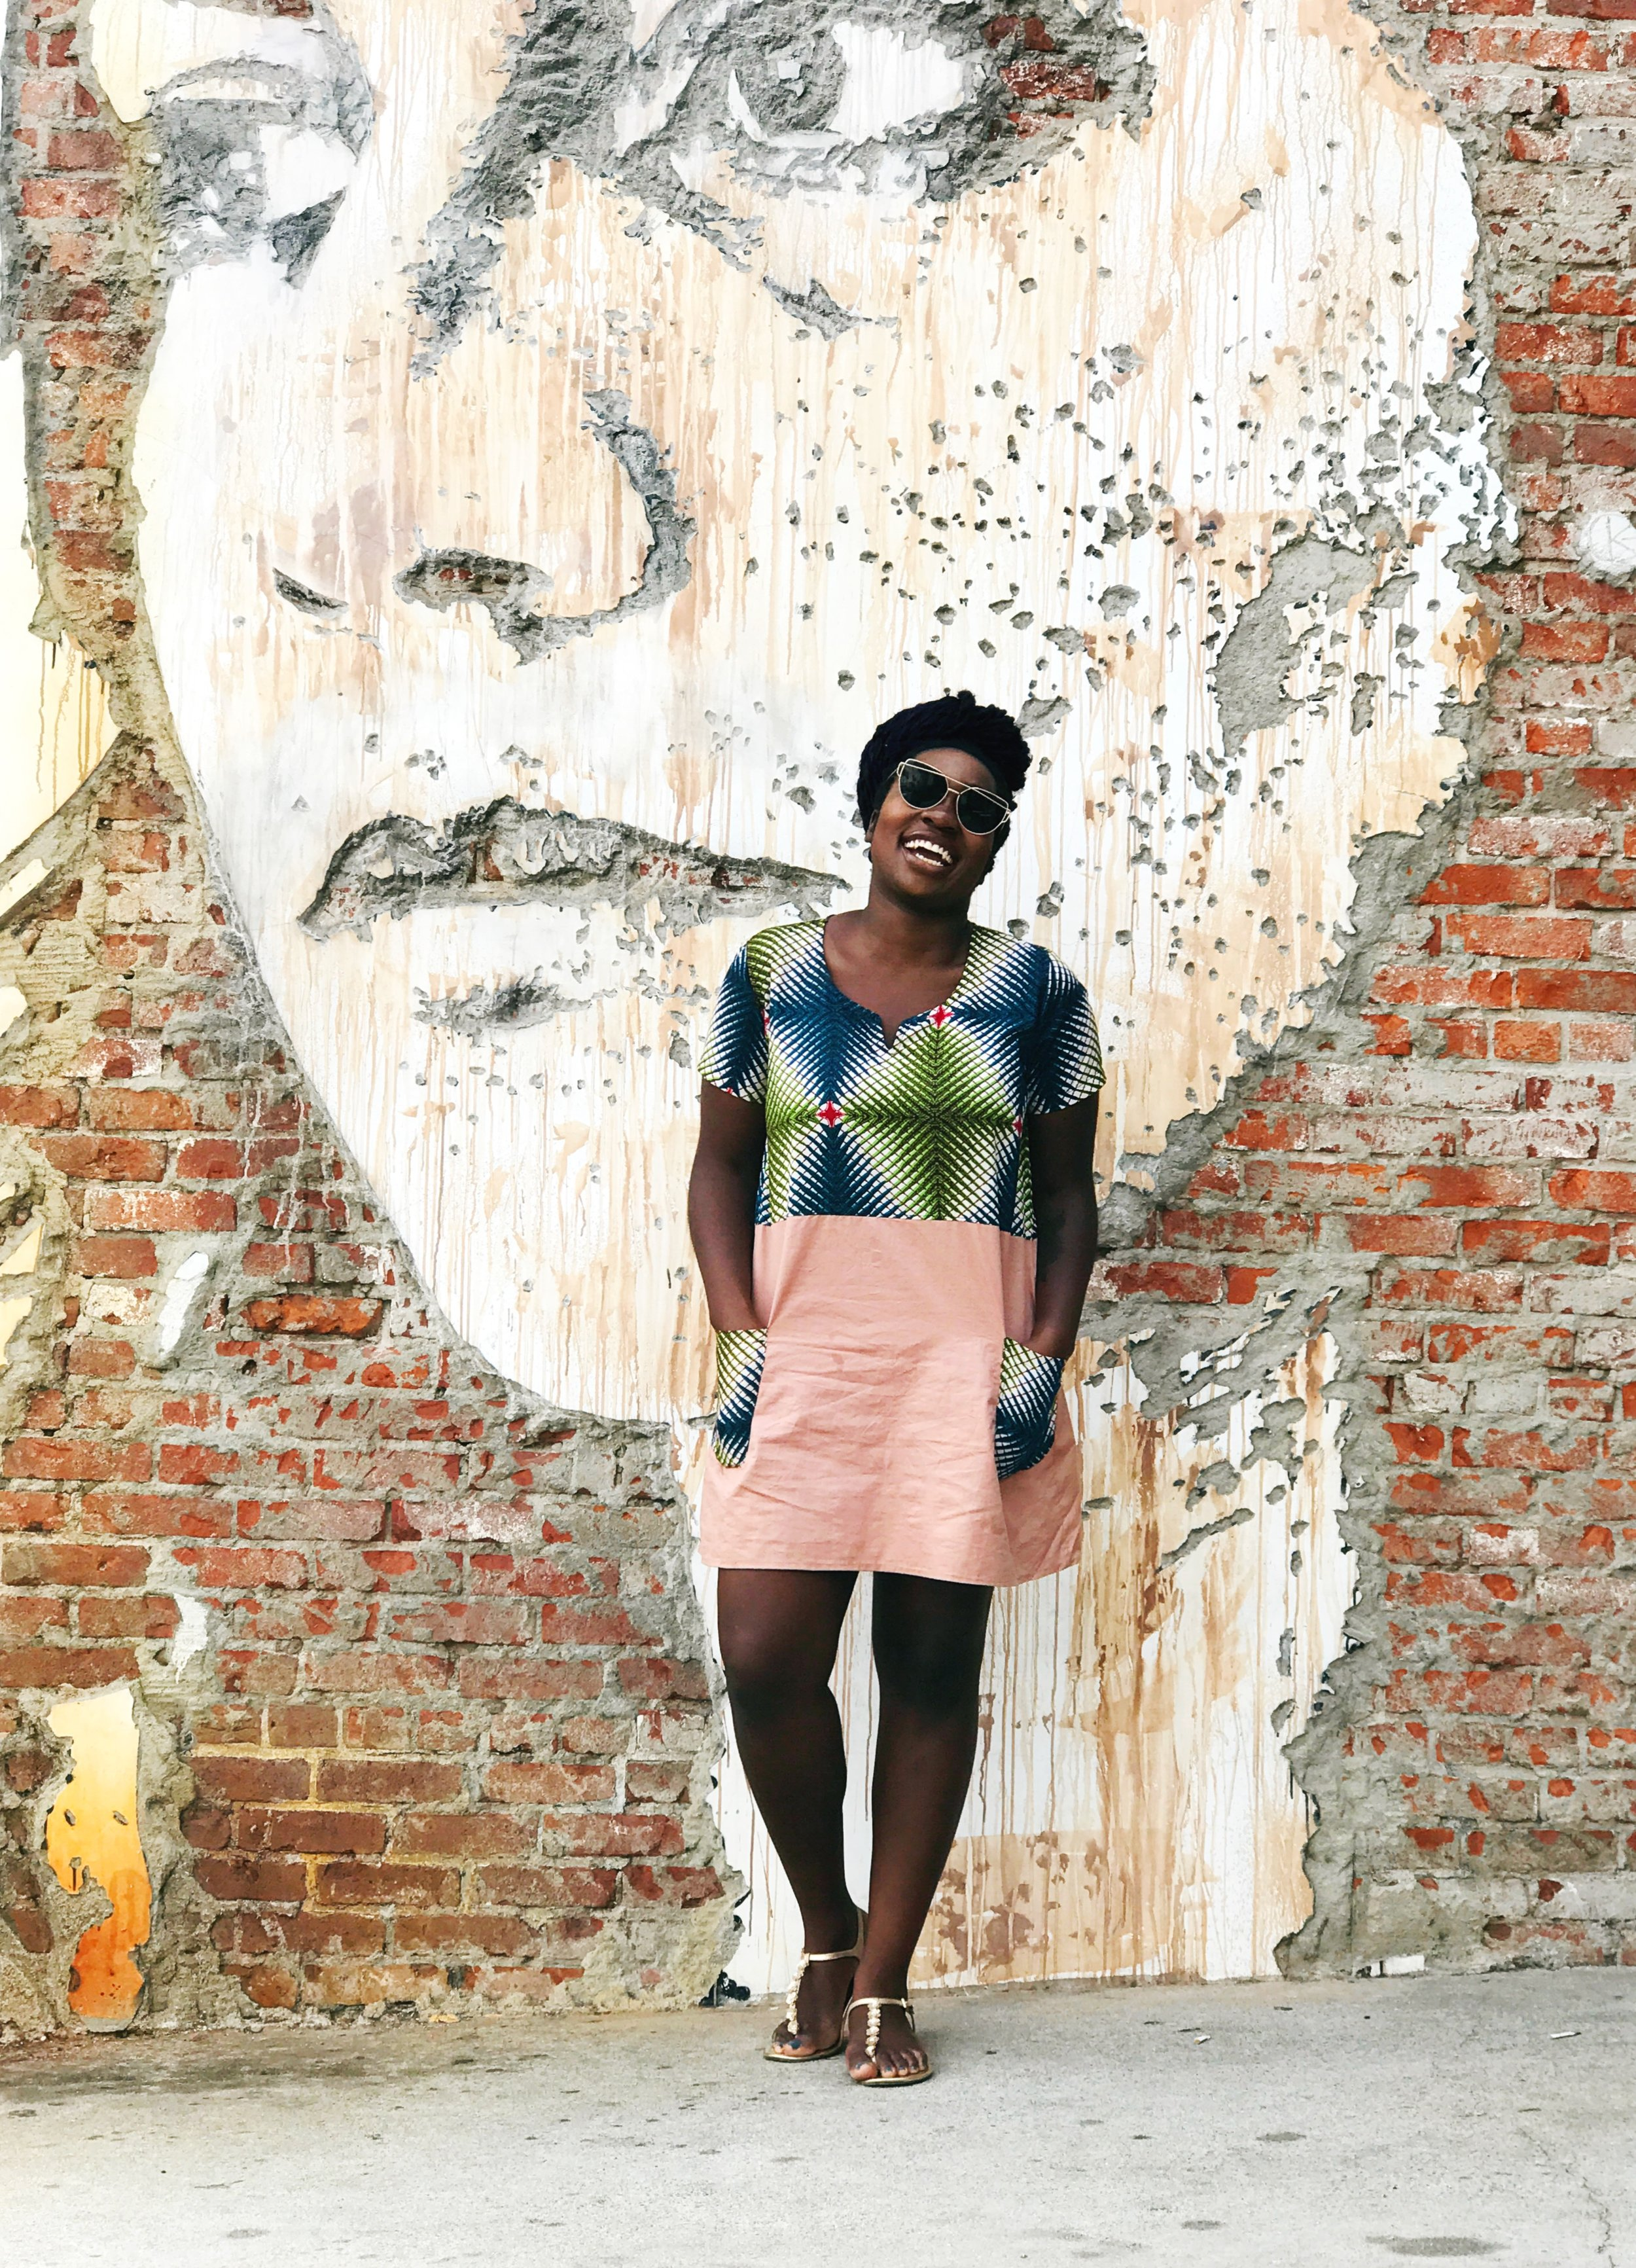 Femi laughing in African dress in front of wall #BlackGirlMagic